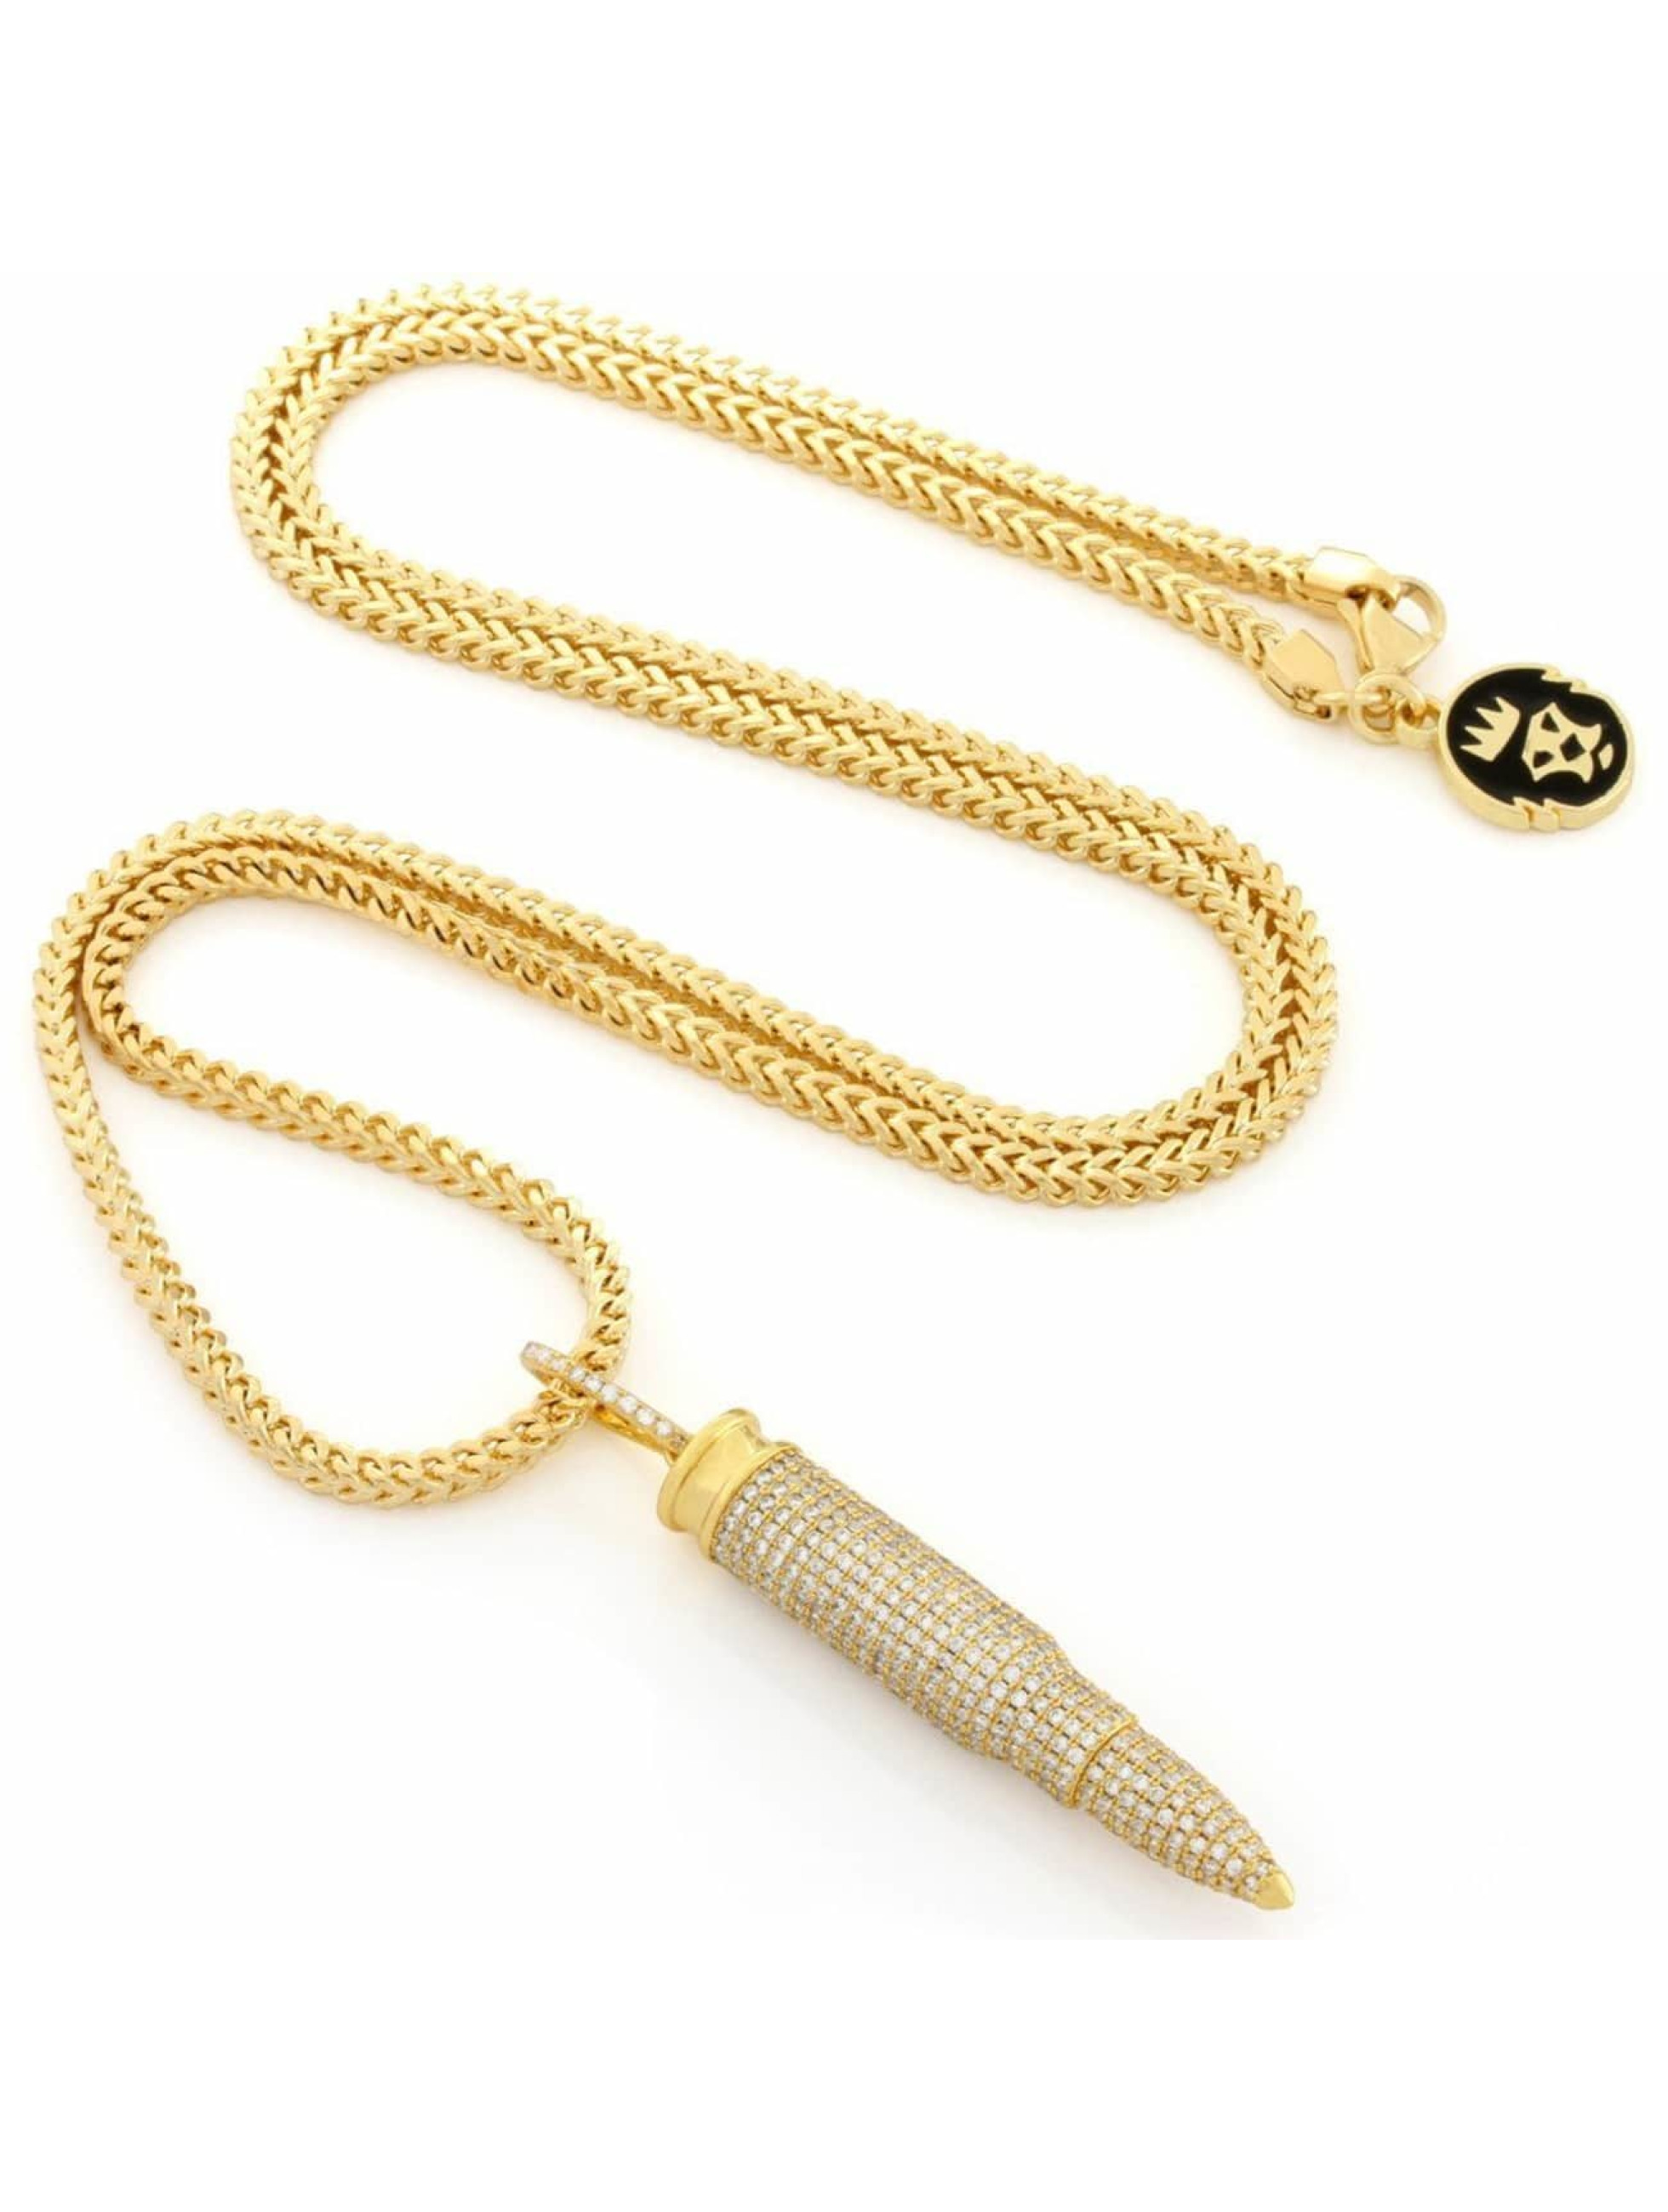 KING ICE ketting Gold_Plated CZ 223 Caliber Bullet goud